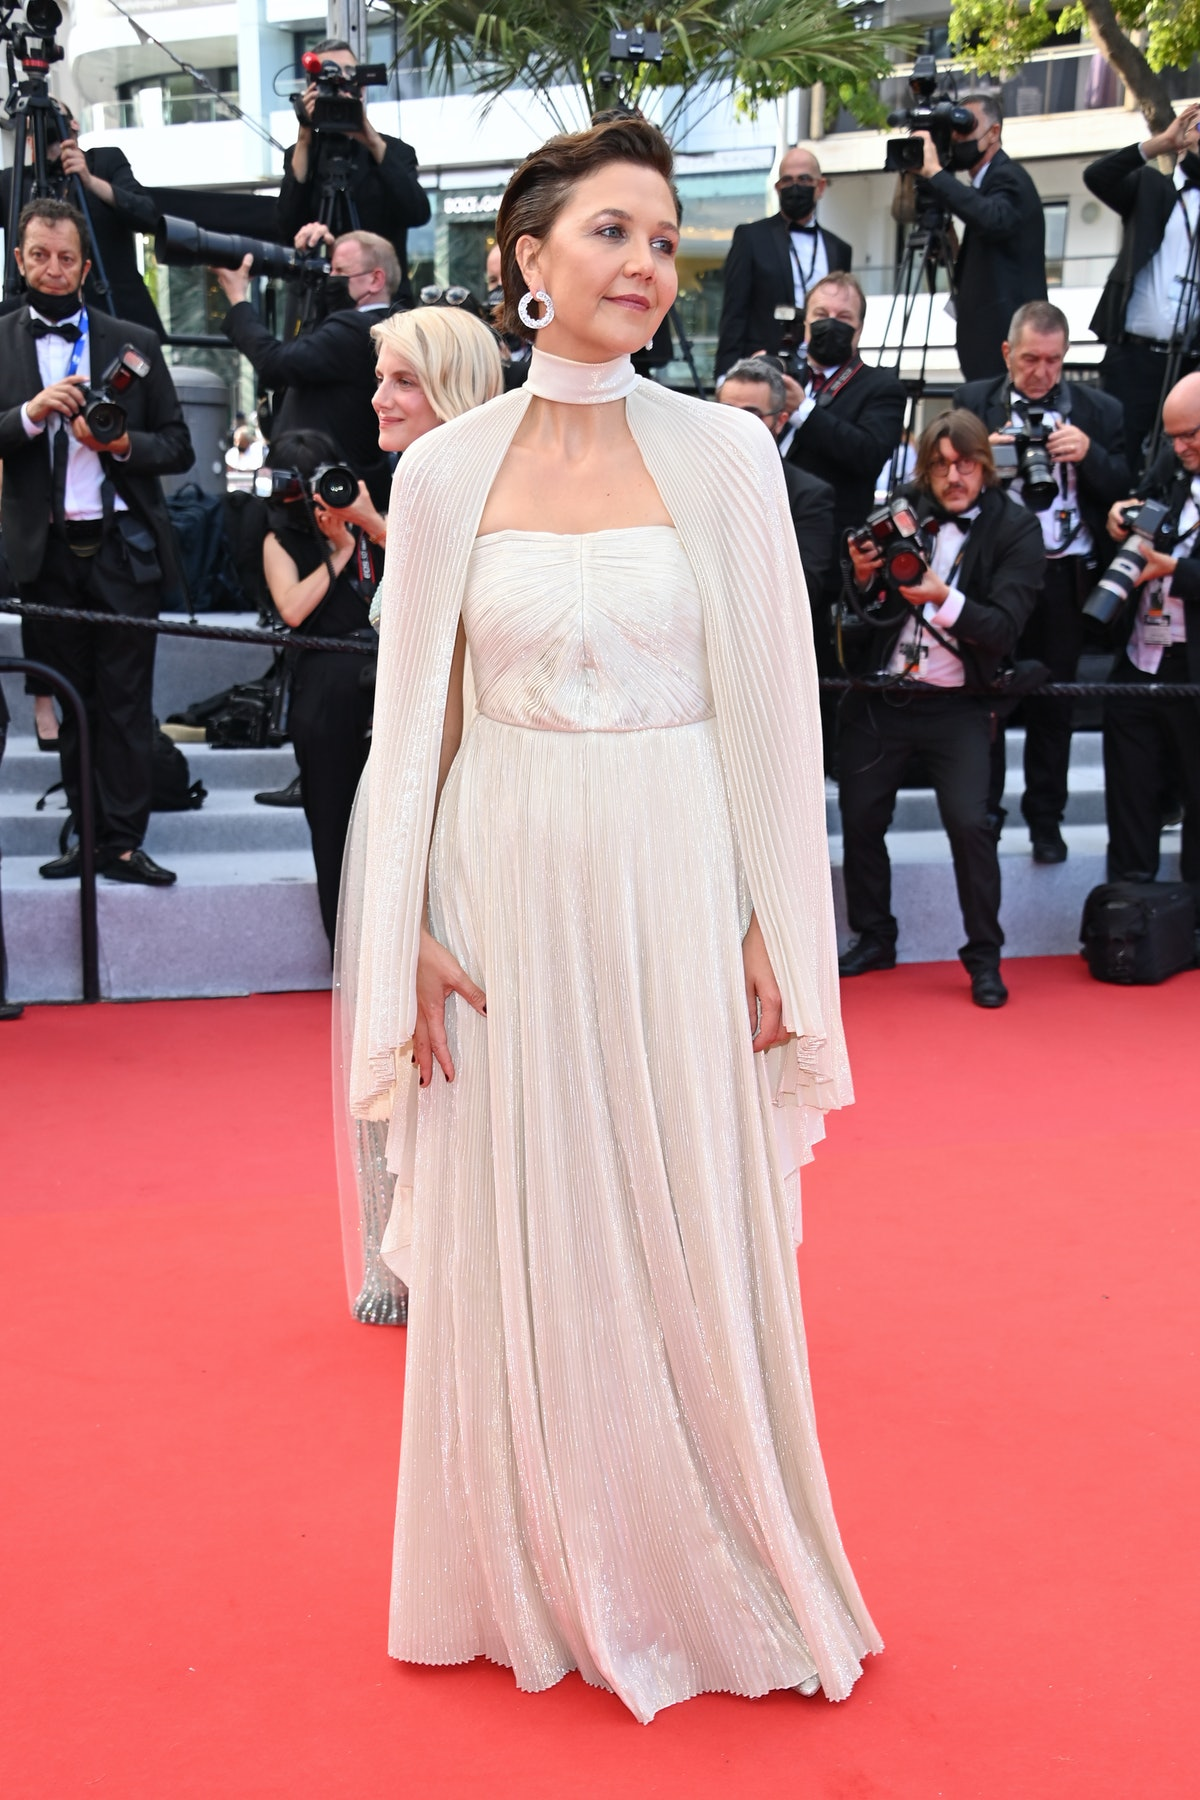 """CANNES, FRANCE - JULY 06: Jury member Maggie Gyllenhaal attends the """"Annette"""" screening and opening ceremony during the 74th annual Cannes Film Festival on July 06, 2021 in Cannes, France. (Photo by Daniele Venturelli/WireImage)"""